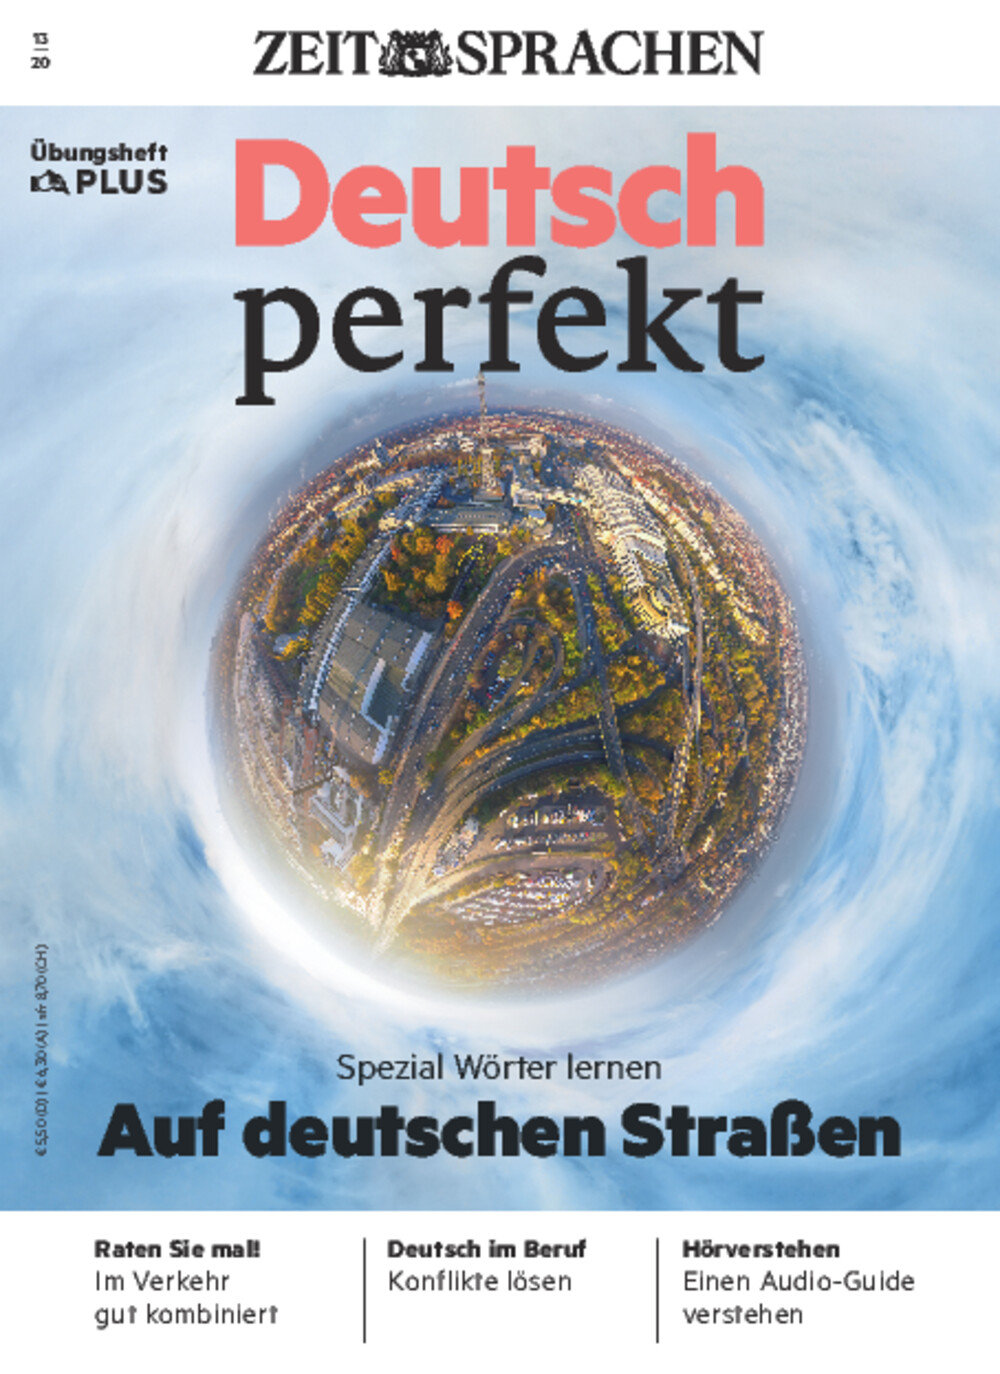 Deutsch perfekt PLUS ePaper 13/2020